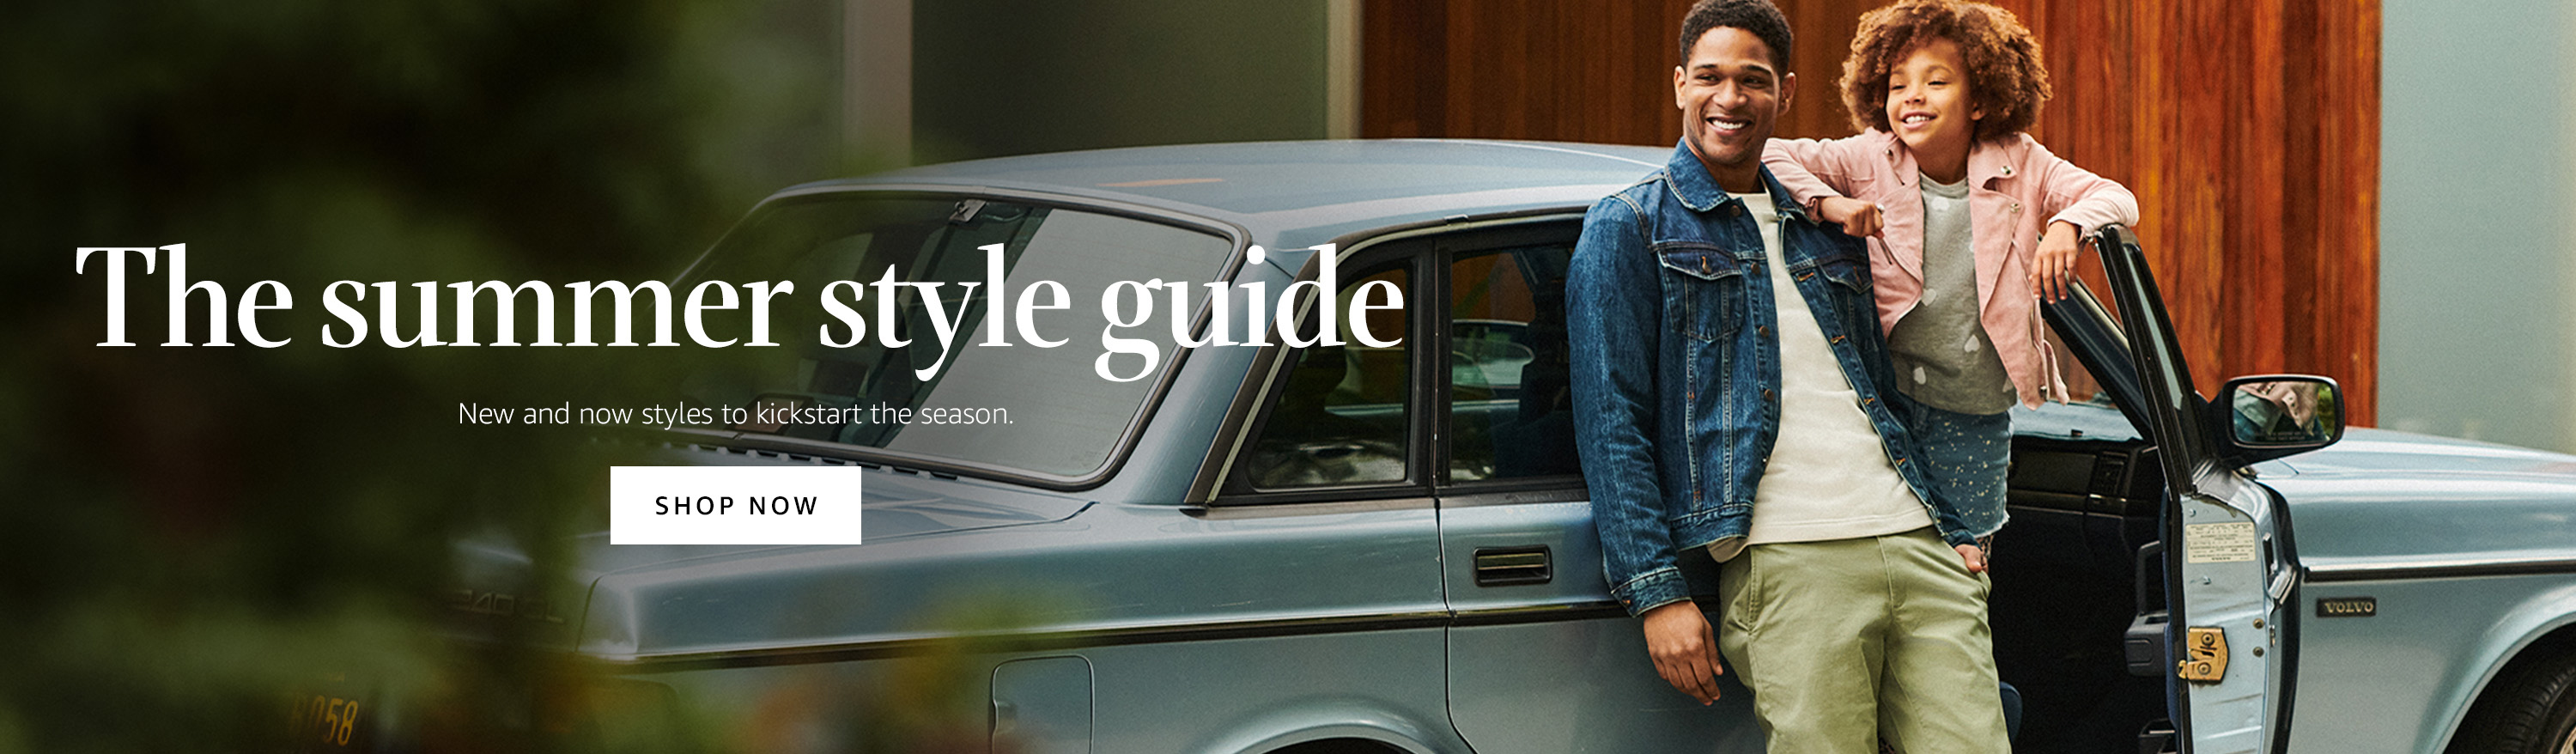 The summer style guide